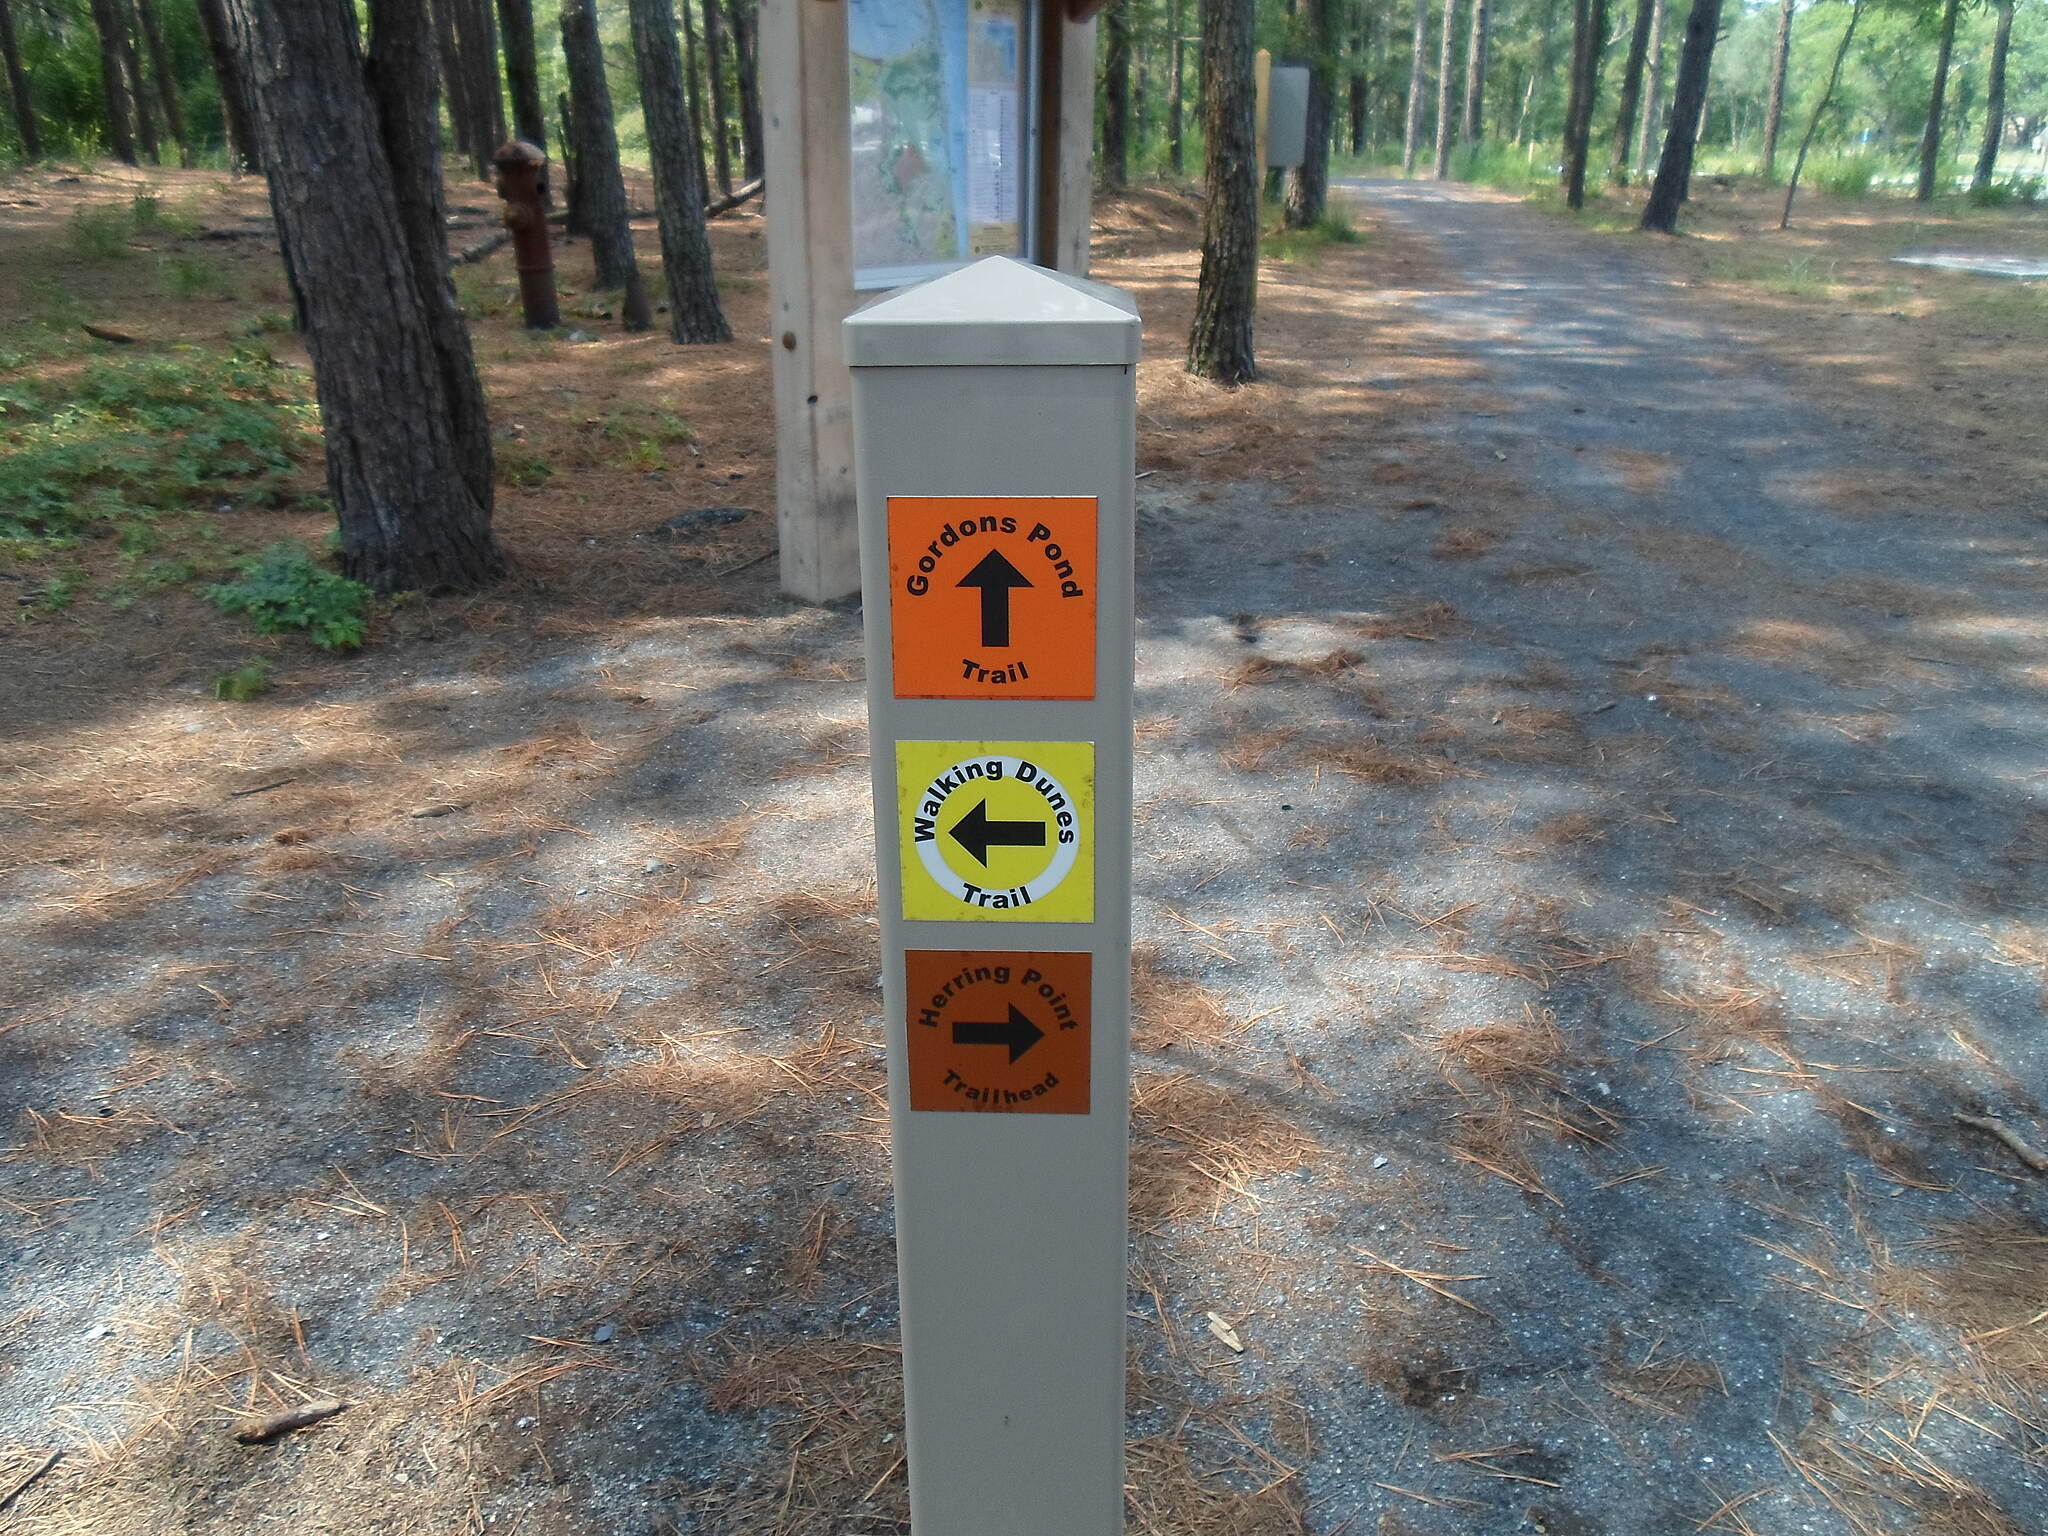 Gordons Pond Trail Gordons Pond Trail One of Delaware's small, but colorful trail directional signs at the Herring Point trailhead.